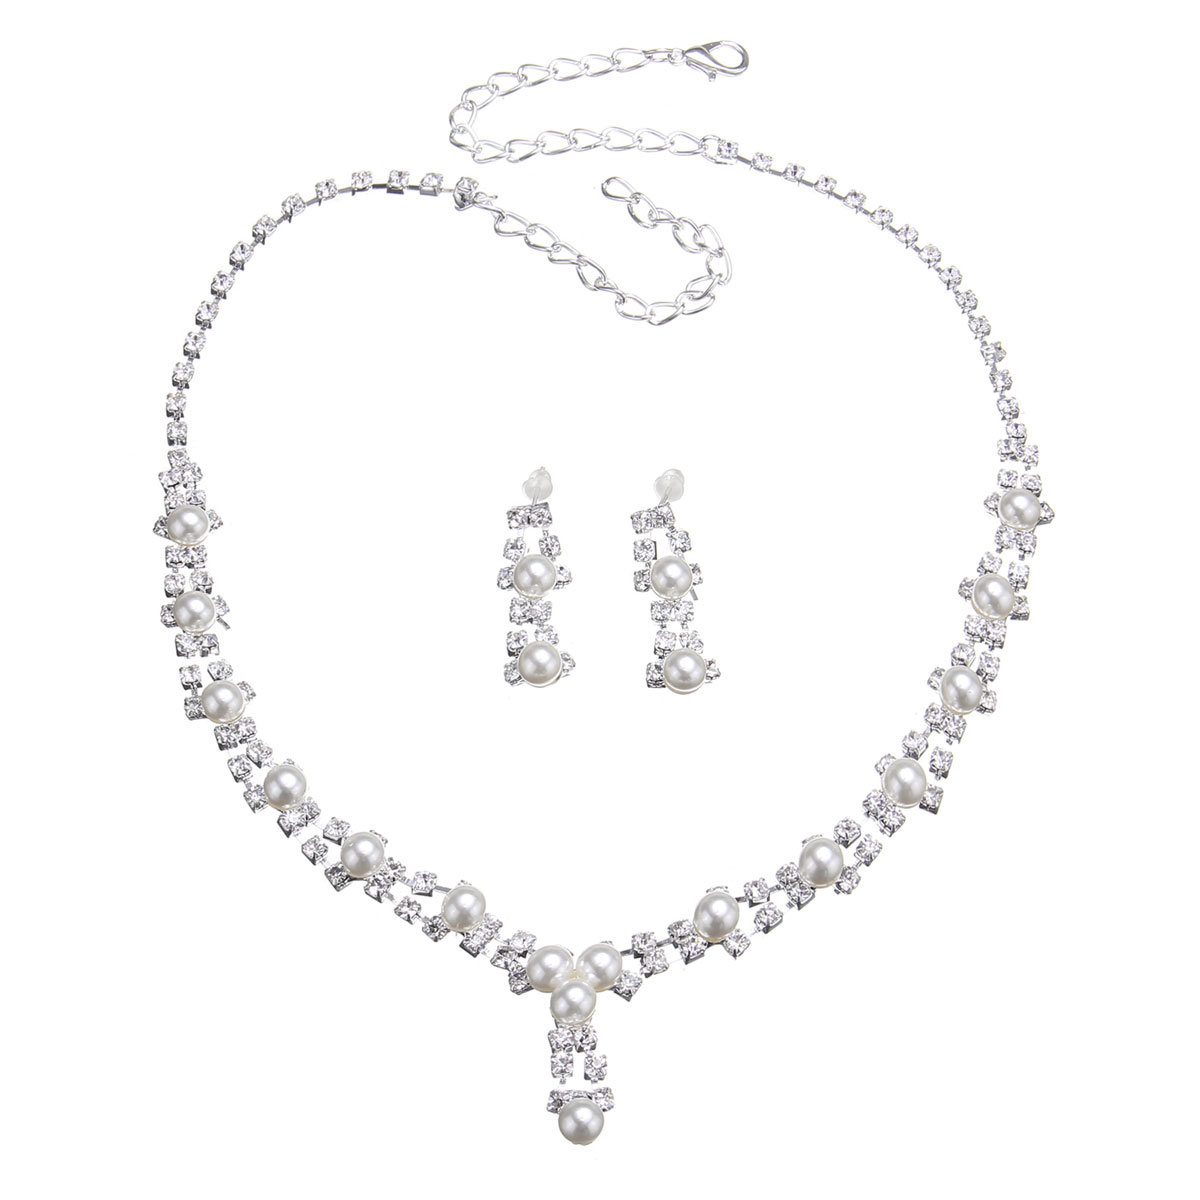 Simple Bridal Full Rhinestone Jewelry Artificial Pearl Necklace Earrings Set